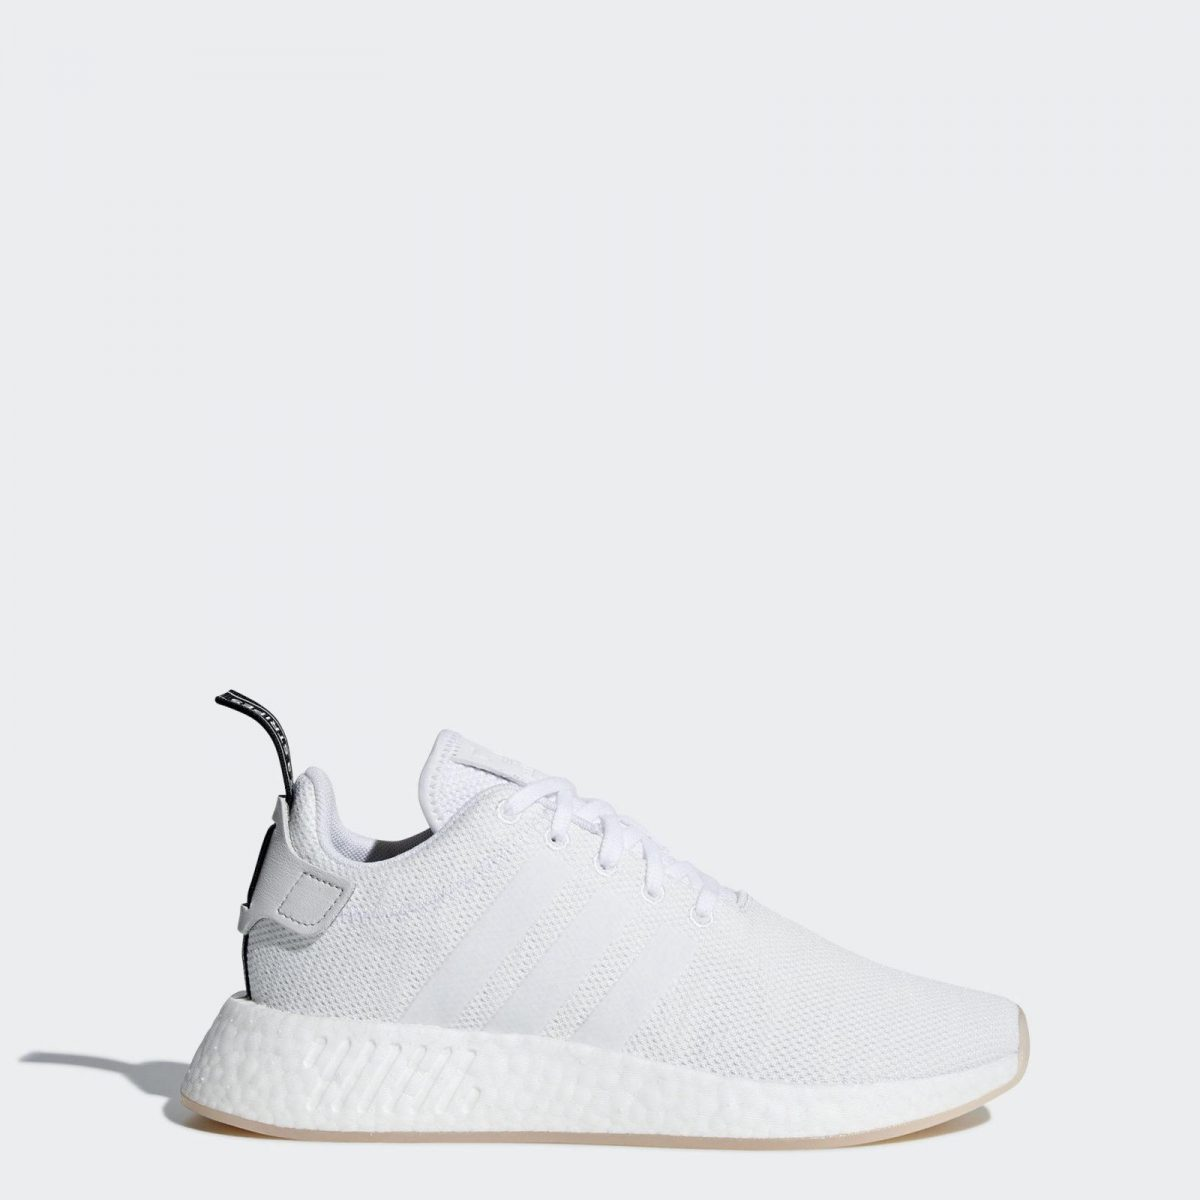 quality design e88de 99c89 NMD R2 adidas Originals (CQ2009)